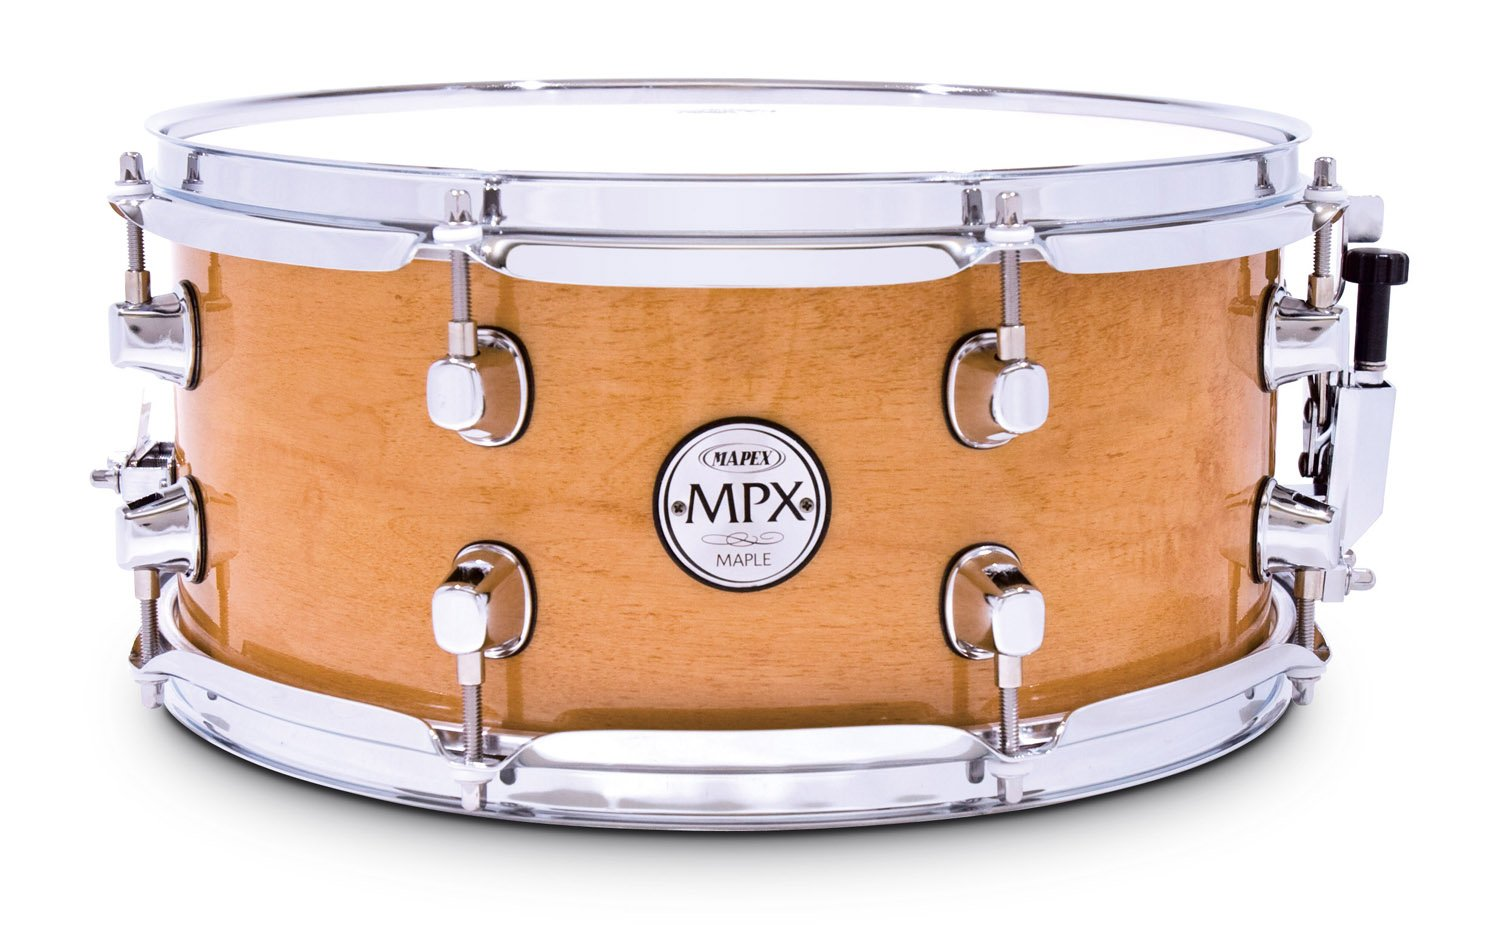 Mapex MPX 13 inch x 06 inch All maple snare drum in natural finish with chrome hardware by Mapex